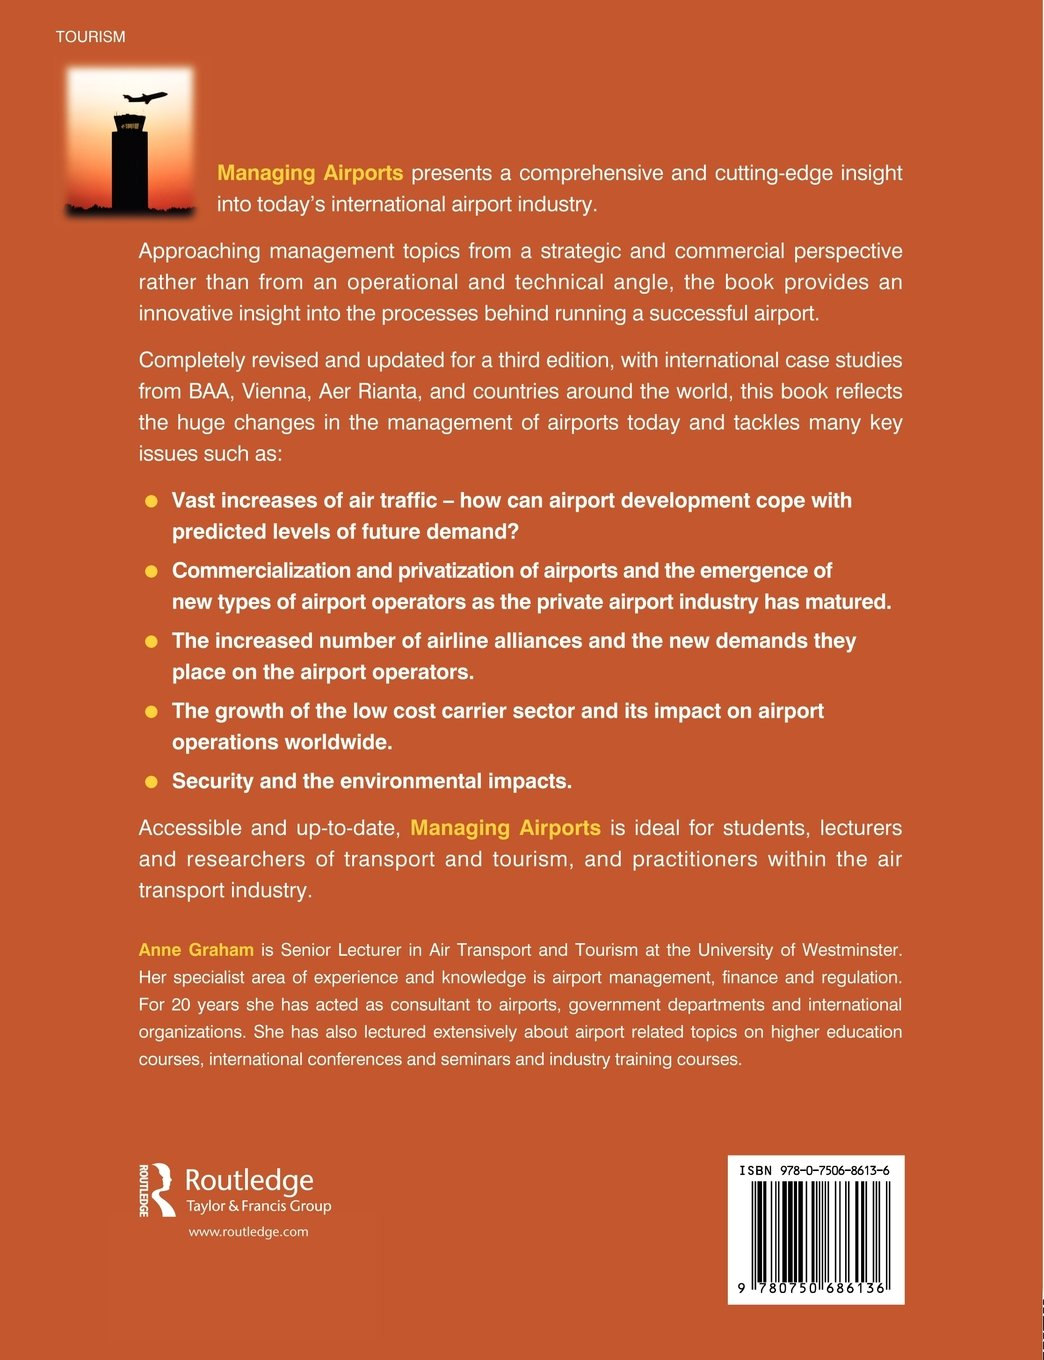 Managing Airports, Third Edition: An International Perspective:  Amazon.co.uk: Anne Graham: Books